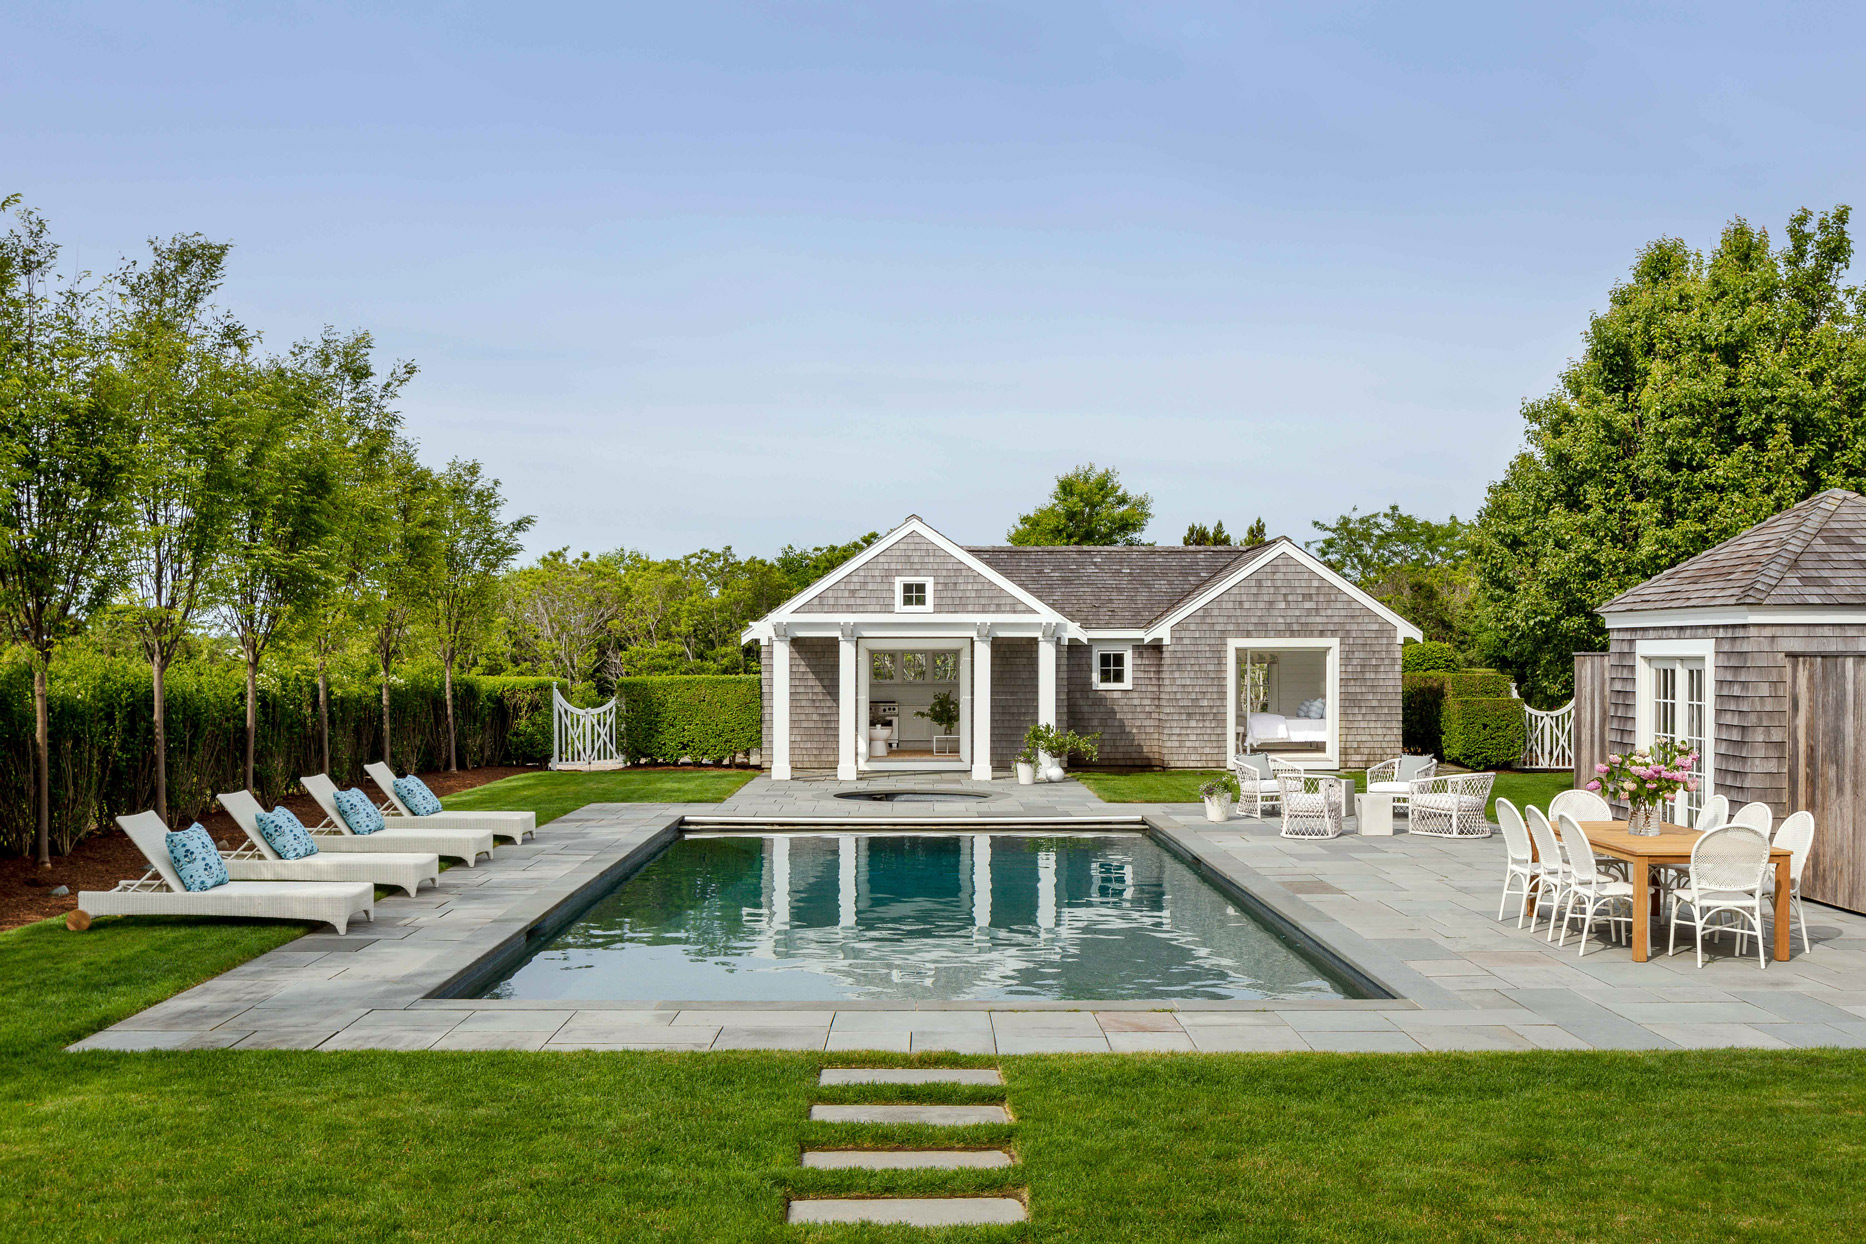 outdoor dining table and swimming pool in backyard of nantucket home